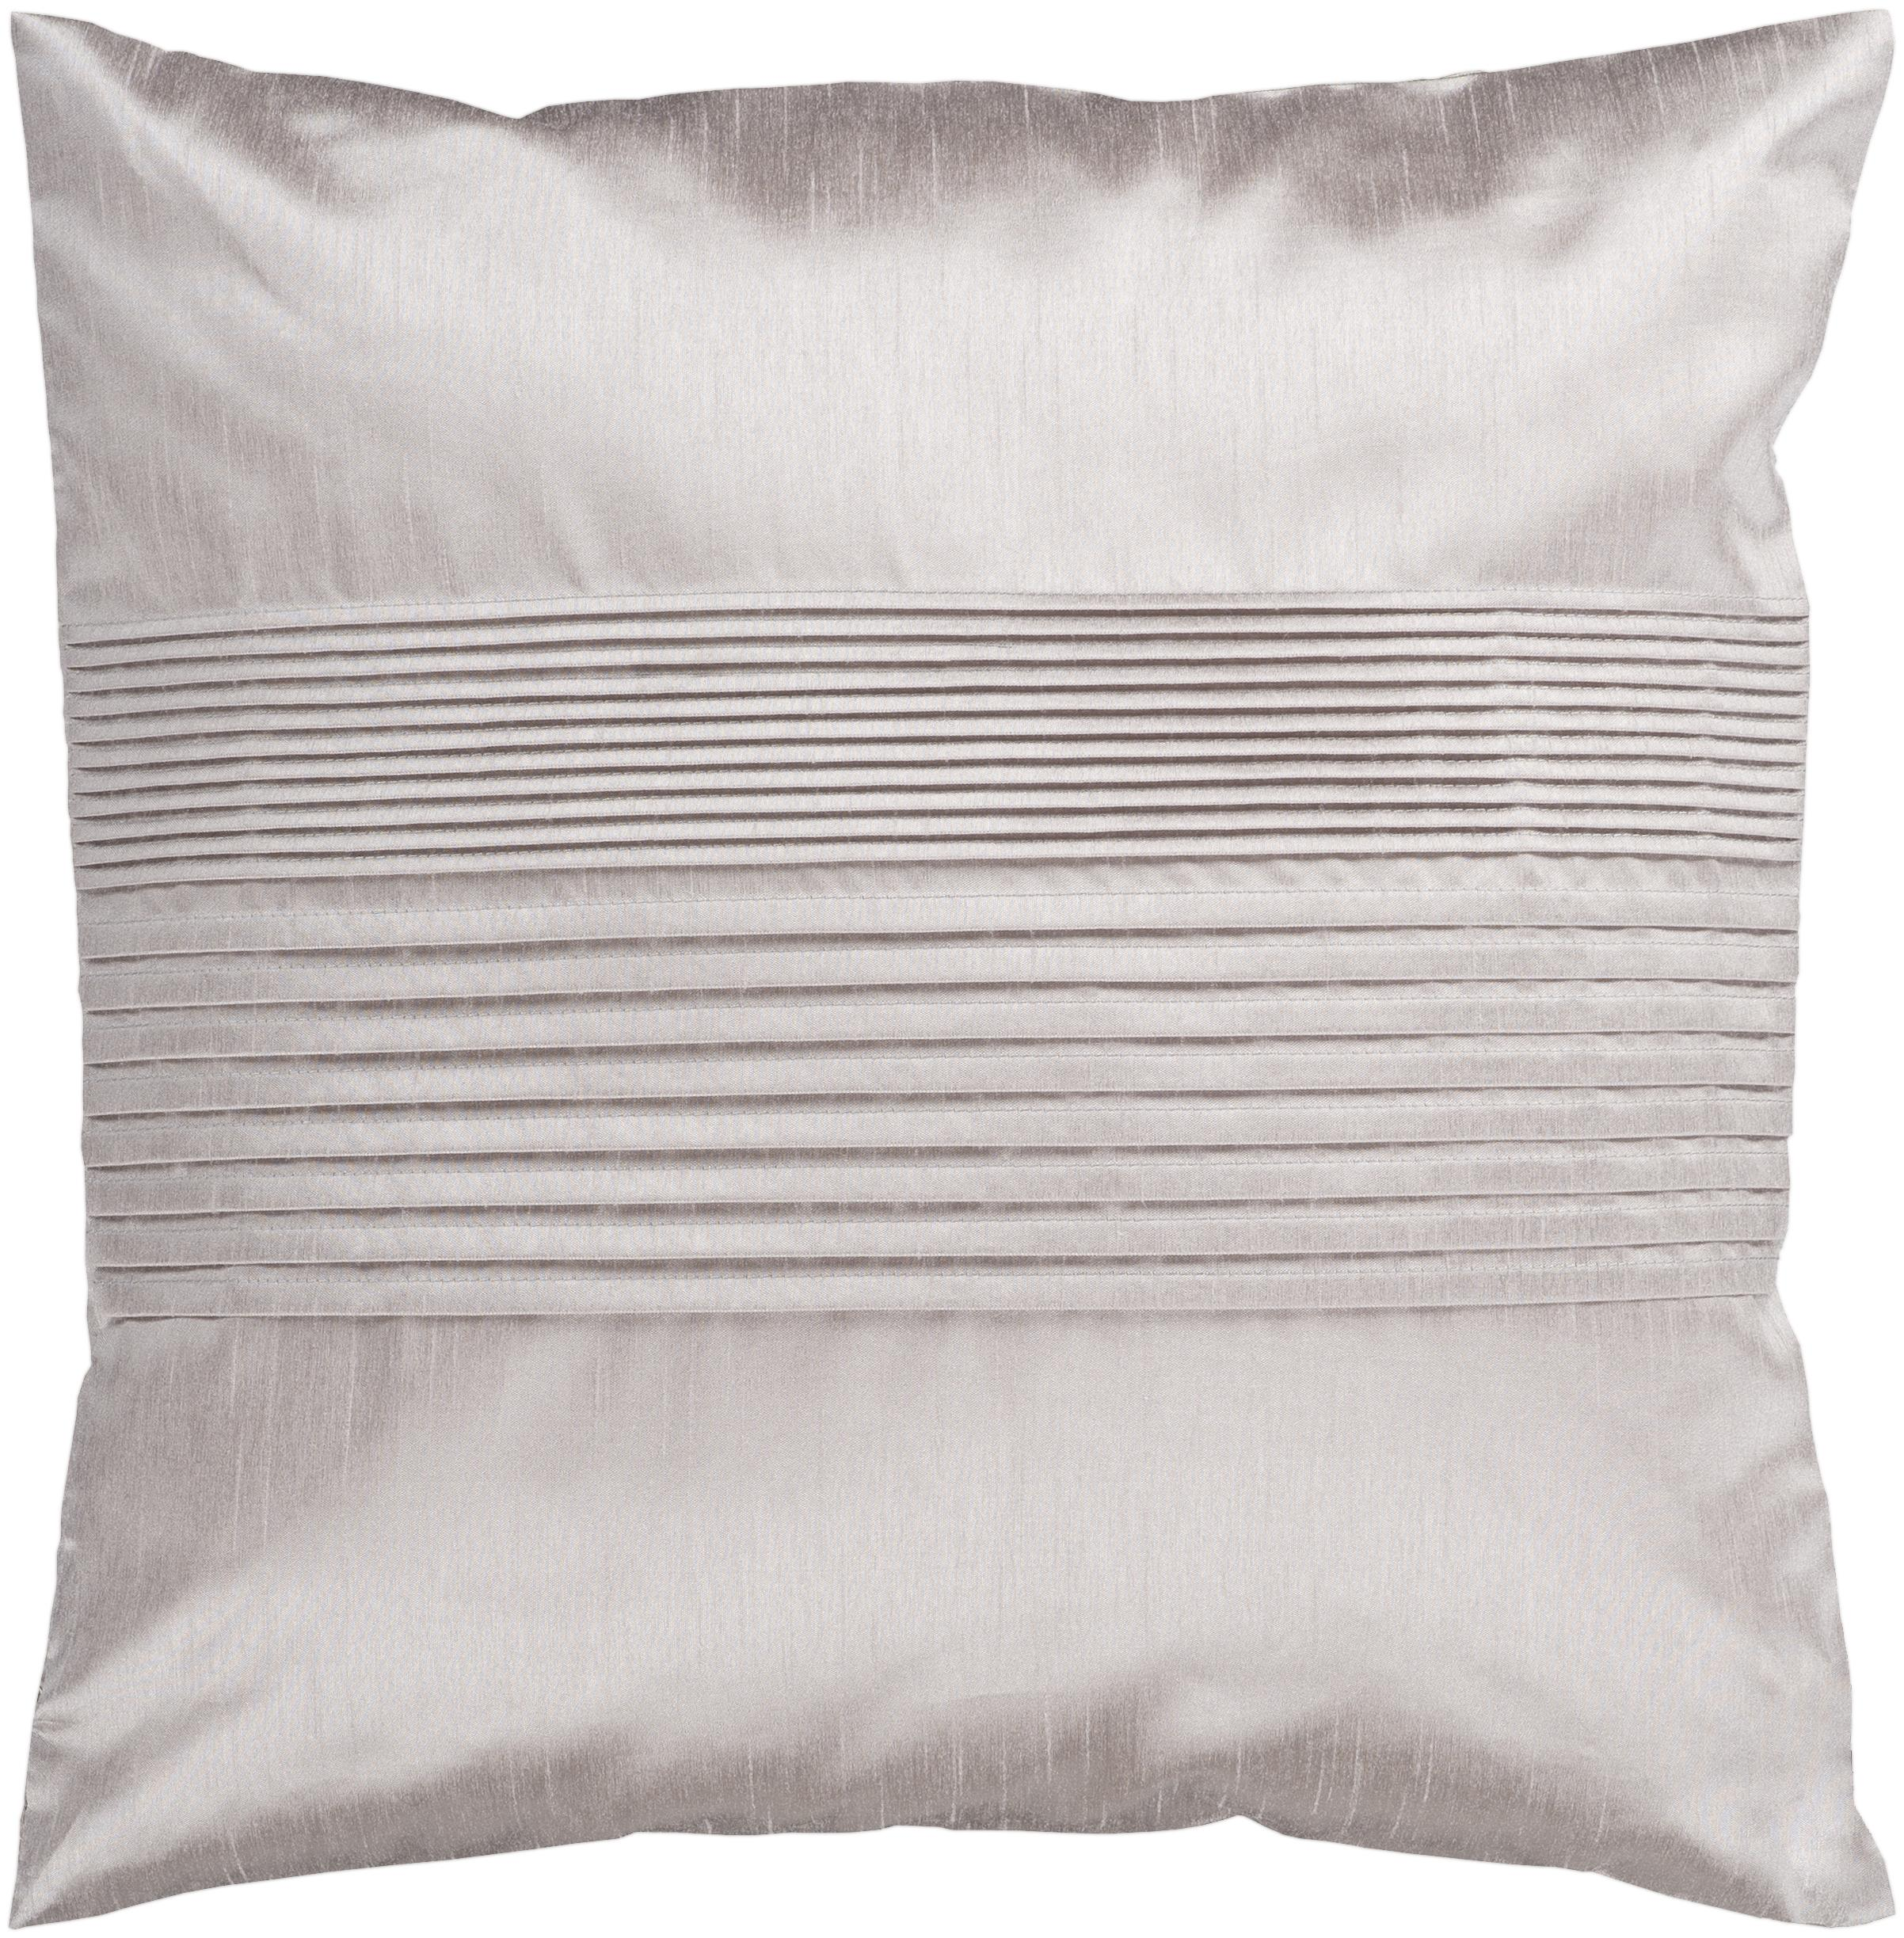 "Surya Pillows 18"" x 18"" Pillow - Item Number: HH015-1818P"